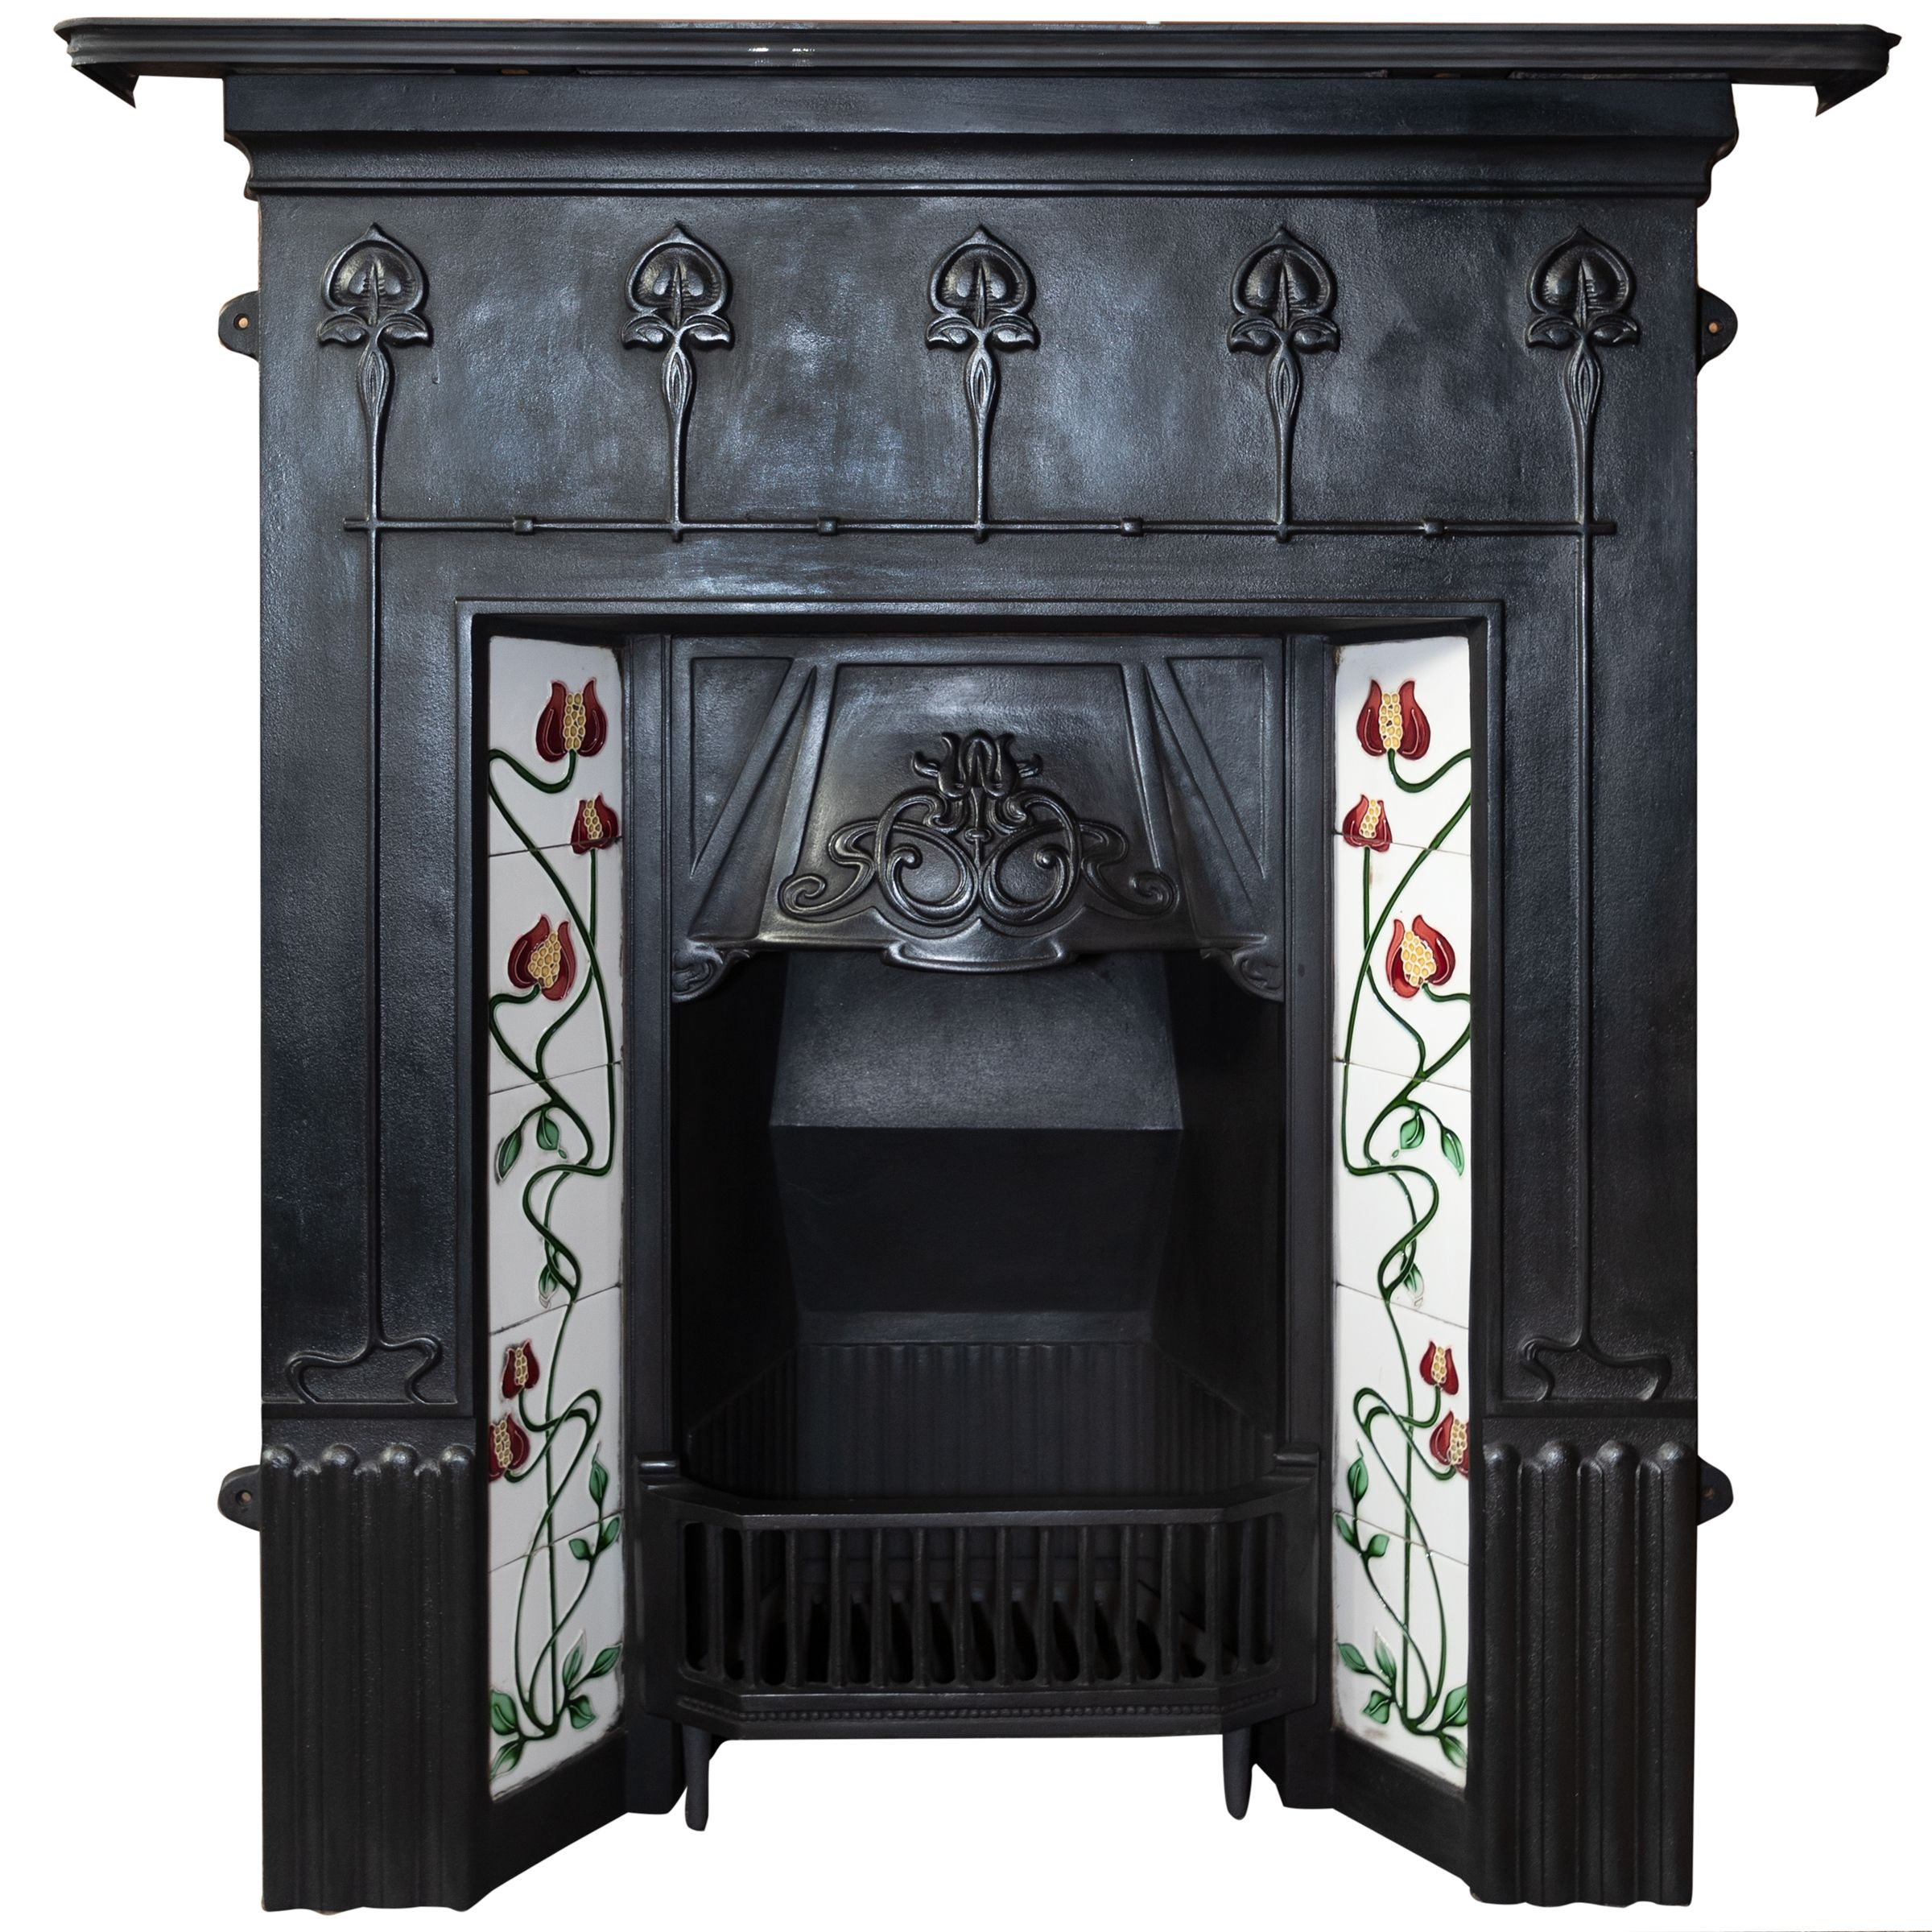 Vintage Fireplace Inserts Elegant Huge Selection Of Antique Cast Iron Fireplaces Fully